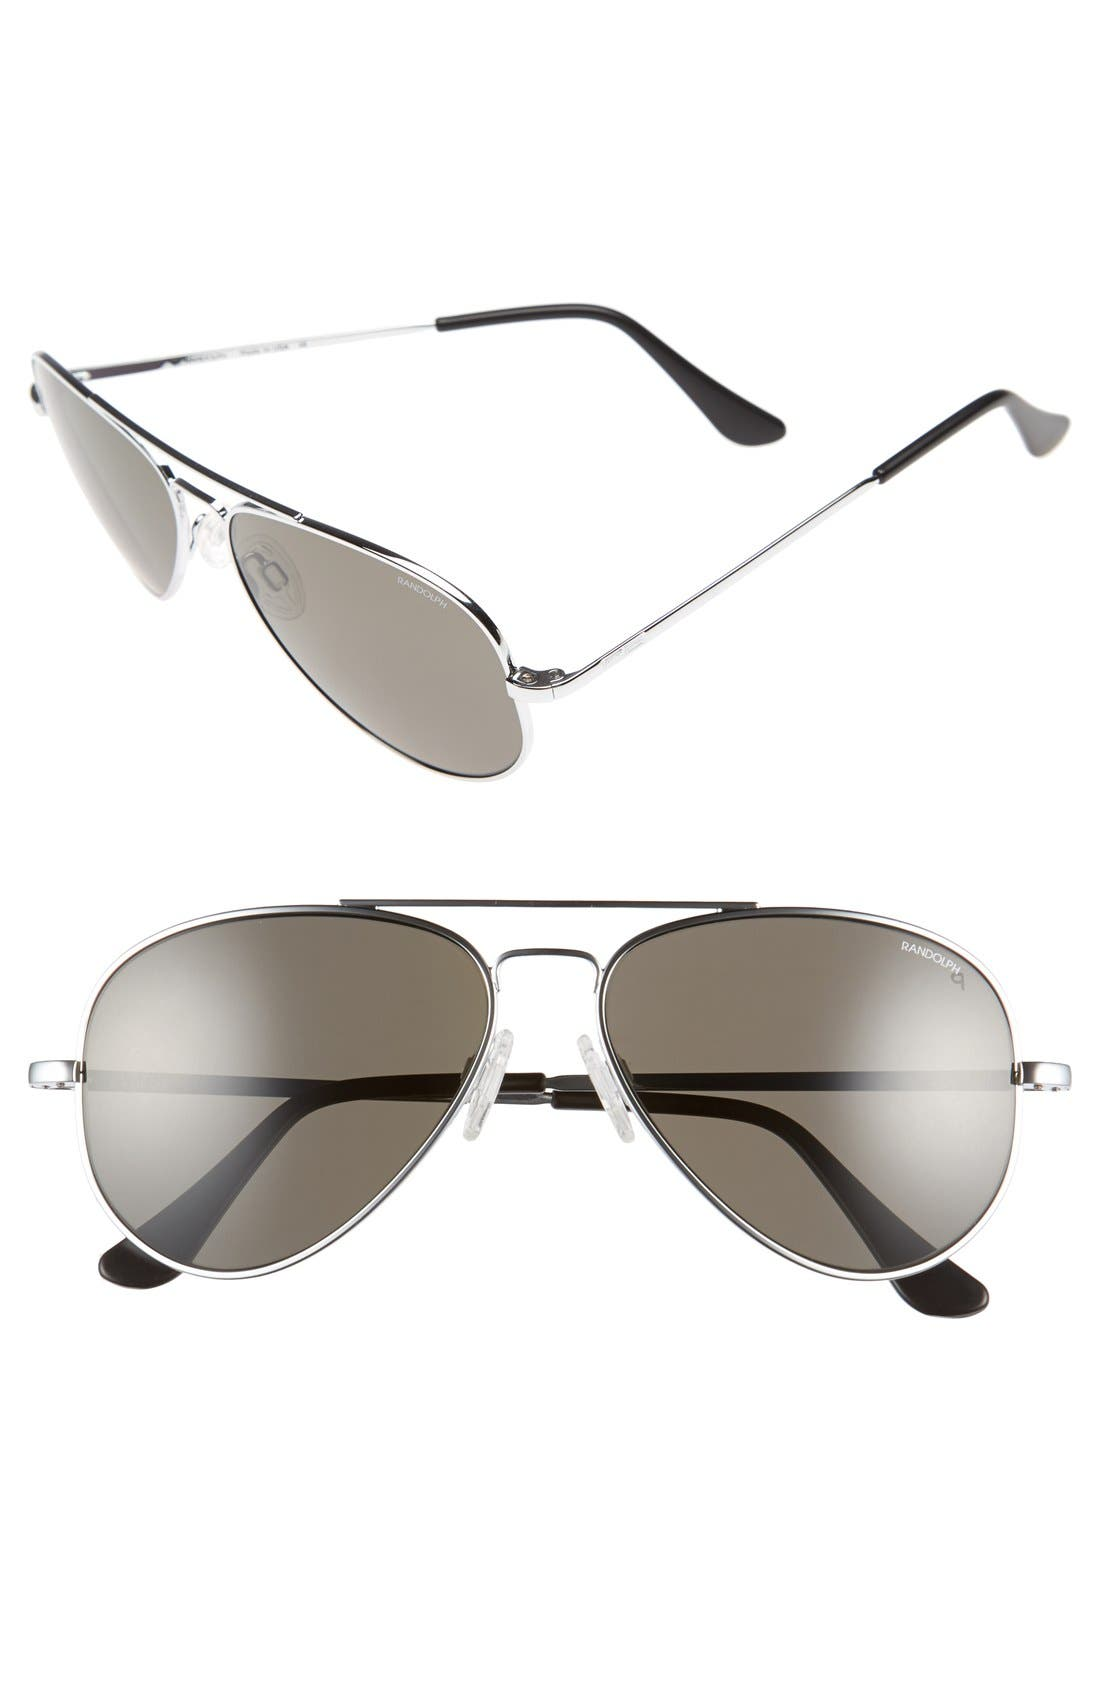 'Concorde' 57mm Polarized Sunglasses,                         Main,                         color, Chrome/ Grey Polarized